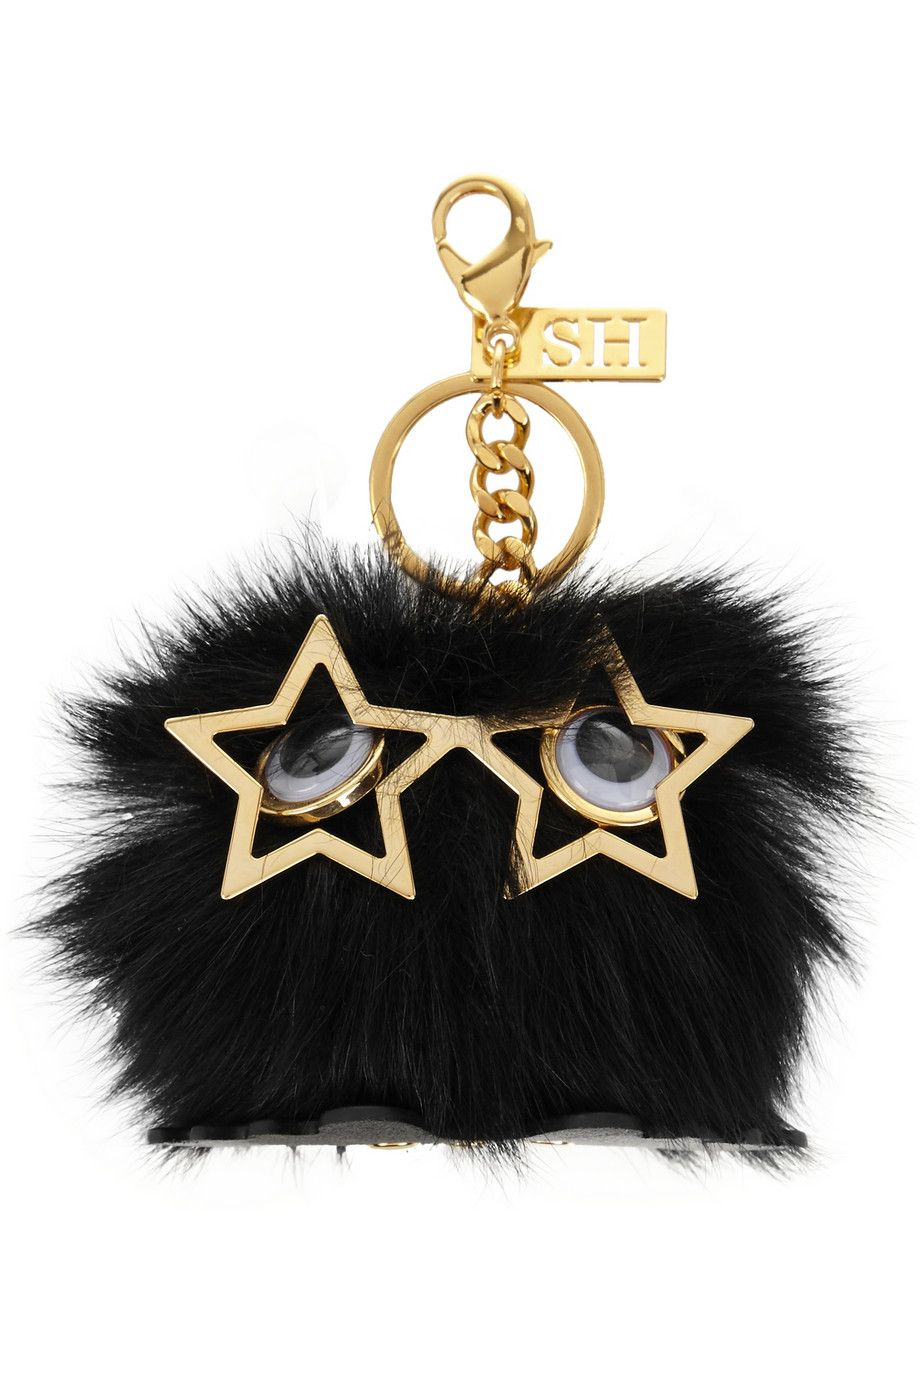 "<p>I've got <a href=""http://askacollection.com/collections/furaccessories/products/pompom-key-chain?variant=11003598086"">this one</a> dangling from my bag strap right now, so I feel your pain. But looking back, what was once cute and clever (JUST LOOK AT HIS GOOGLY EYES) might have been 2015's answer to the previous year's visor all along. </p>"